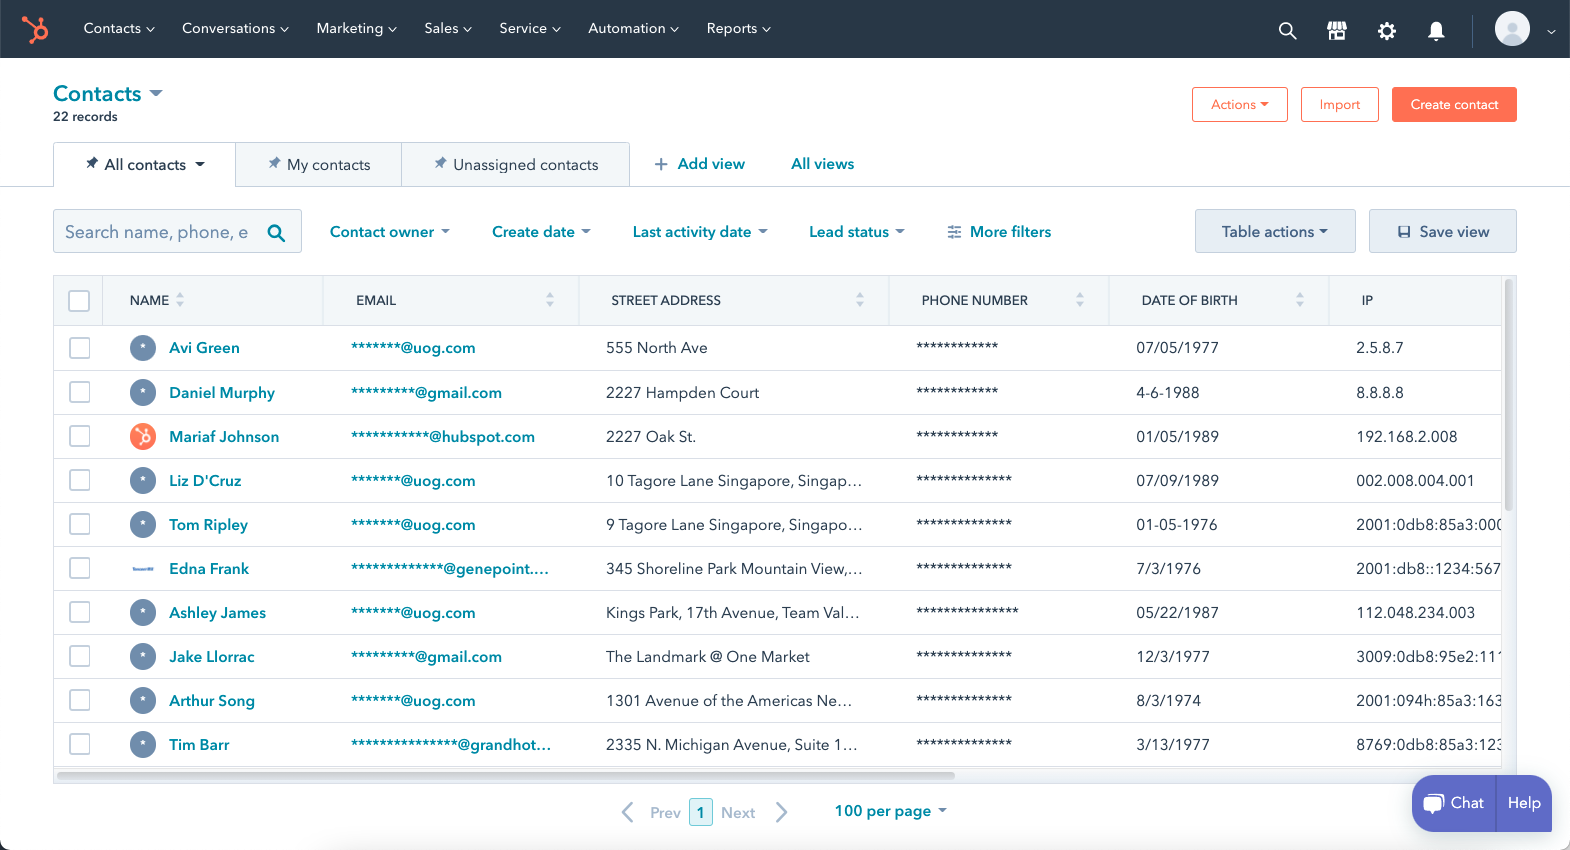 Contact Records View on HubSpot with Nullafi Rules